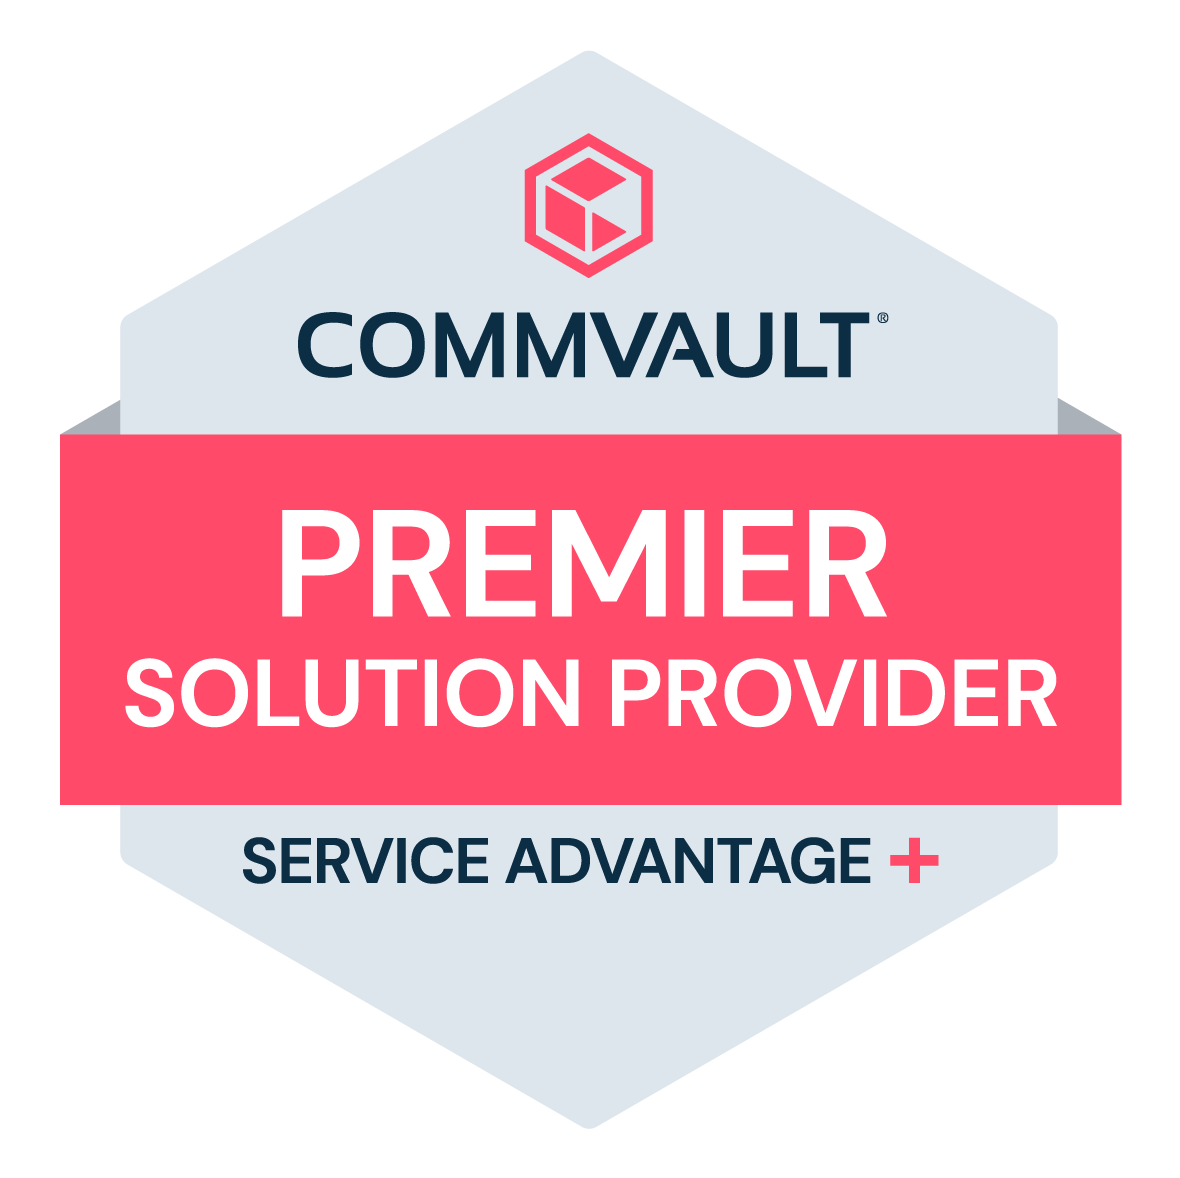 Commvault Premier Solution Provider Advantage+